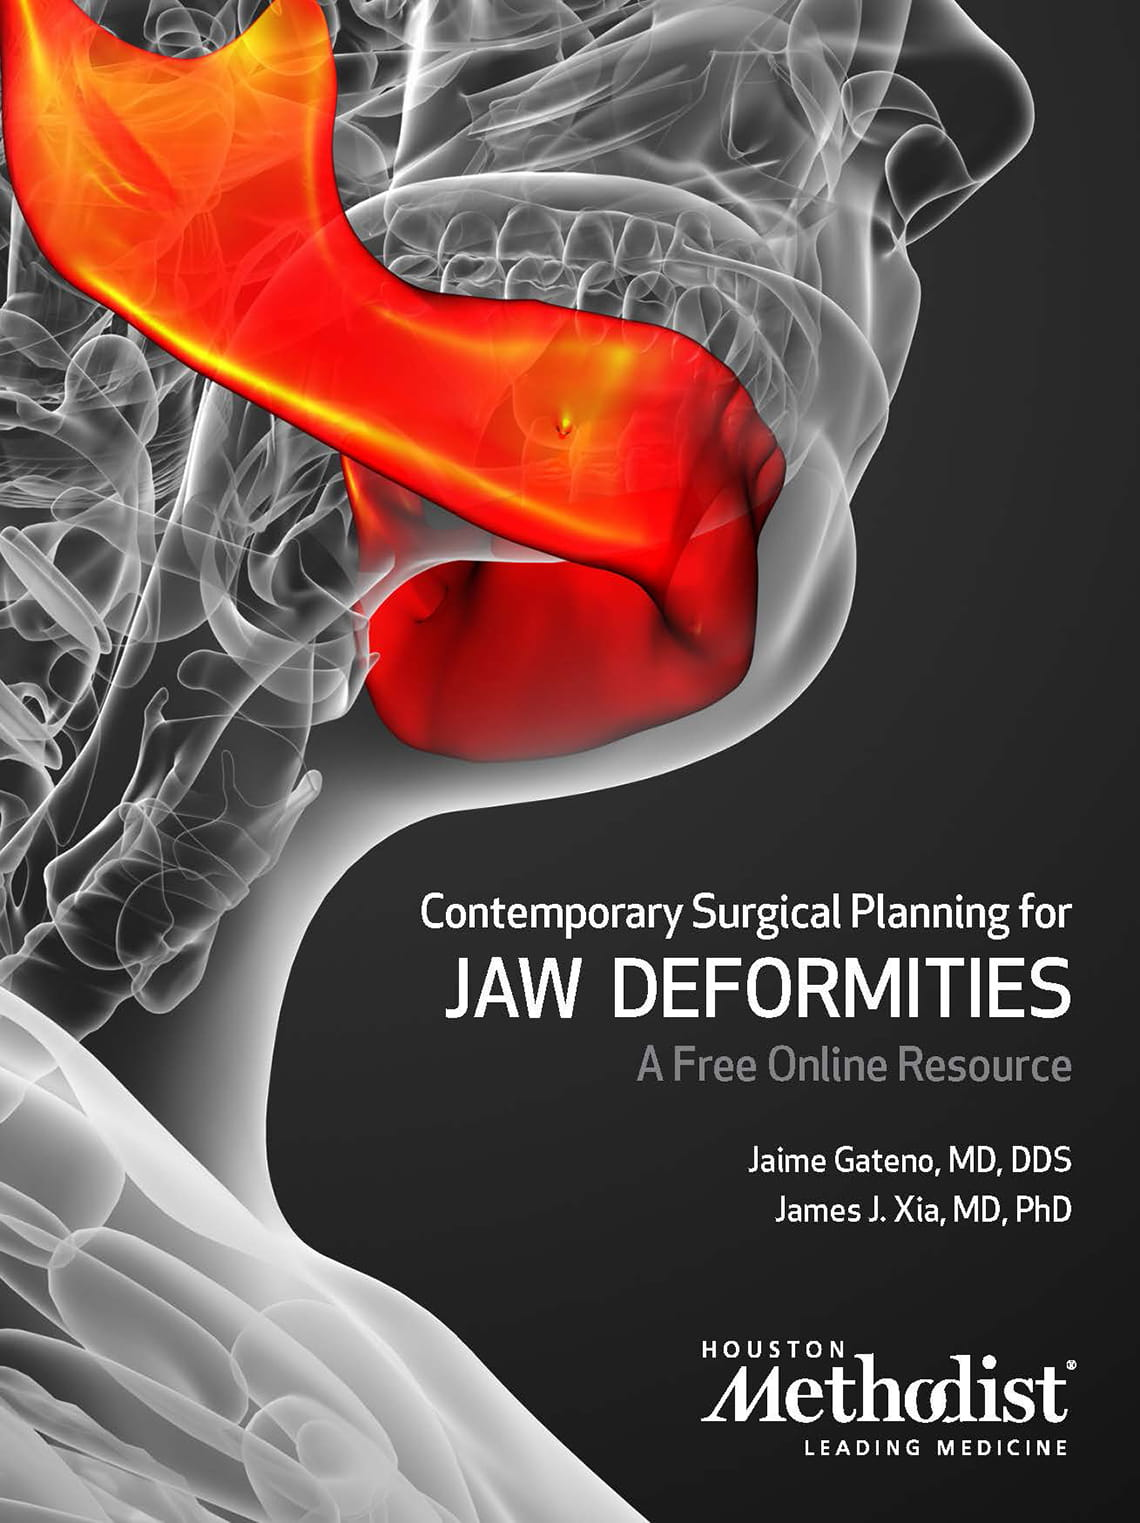 Contemporary Surgical Planning For Jaw Deformities: A Free Online Resource Book COver